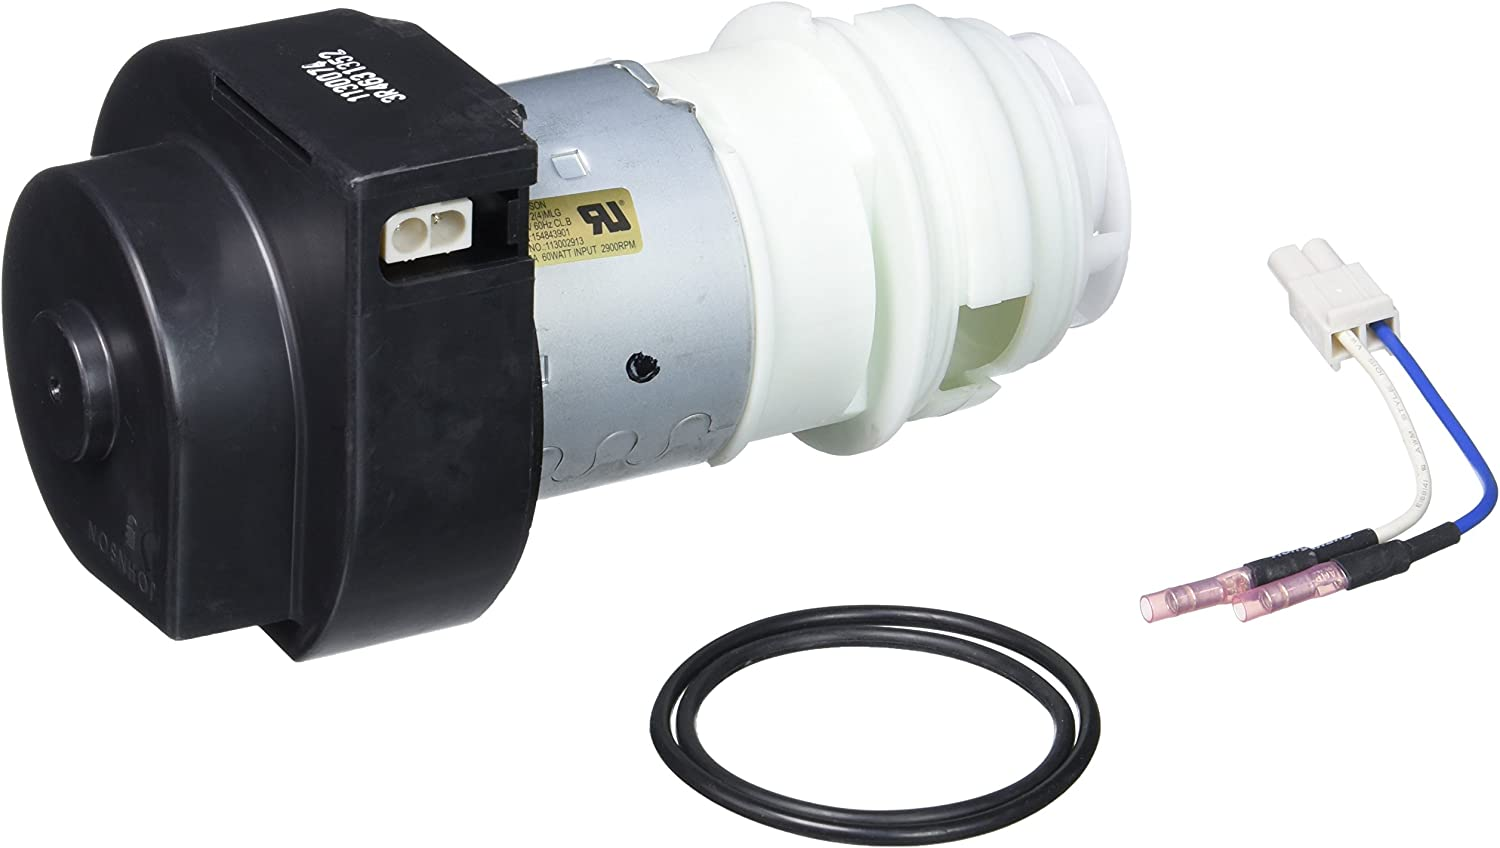 Electrolux 154859101 Motor Kit with Harness Single Speed